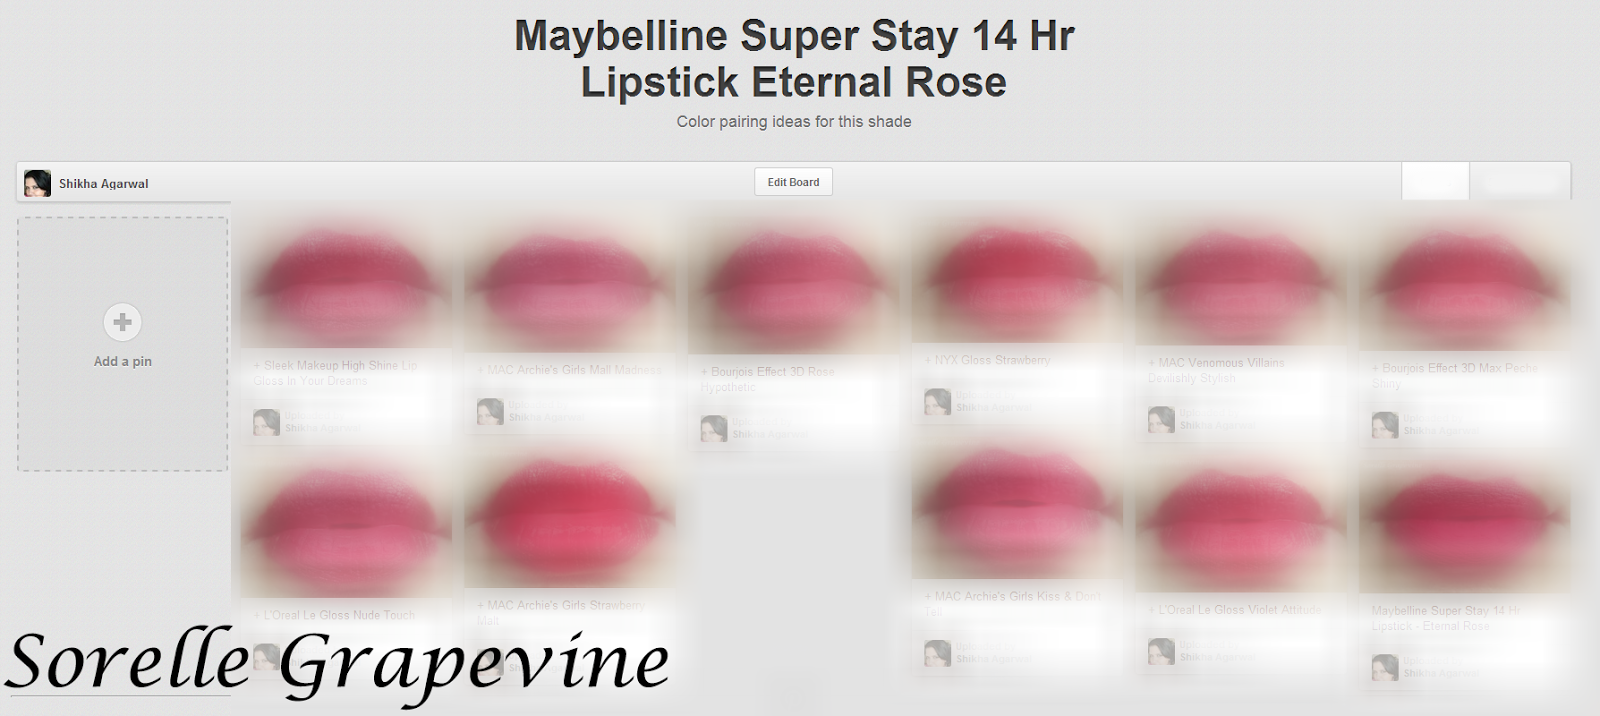 Sorelle Grapevinethe Pairing Project Maybelline Super Stay 14 Hr